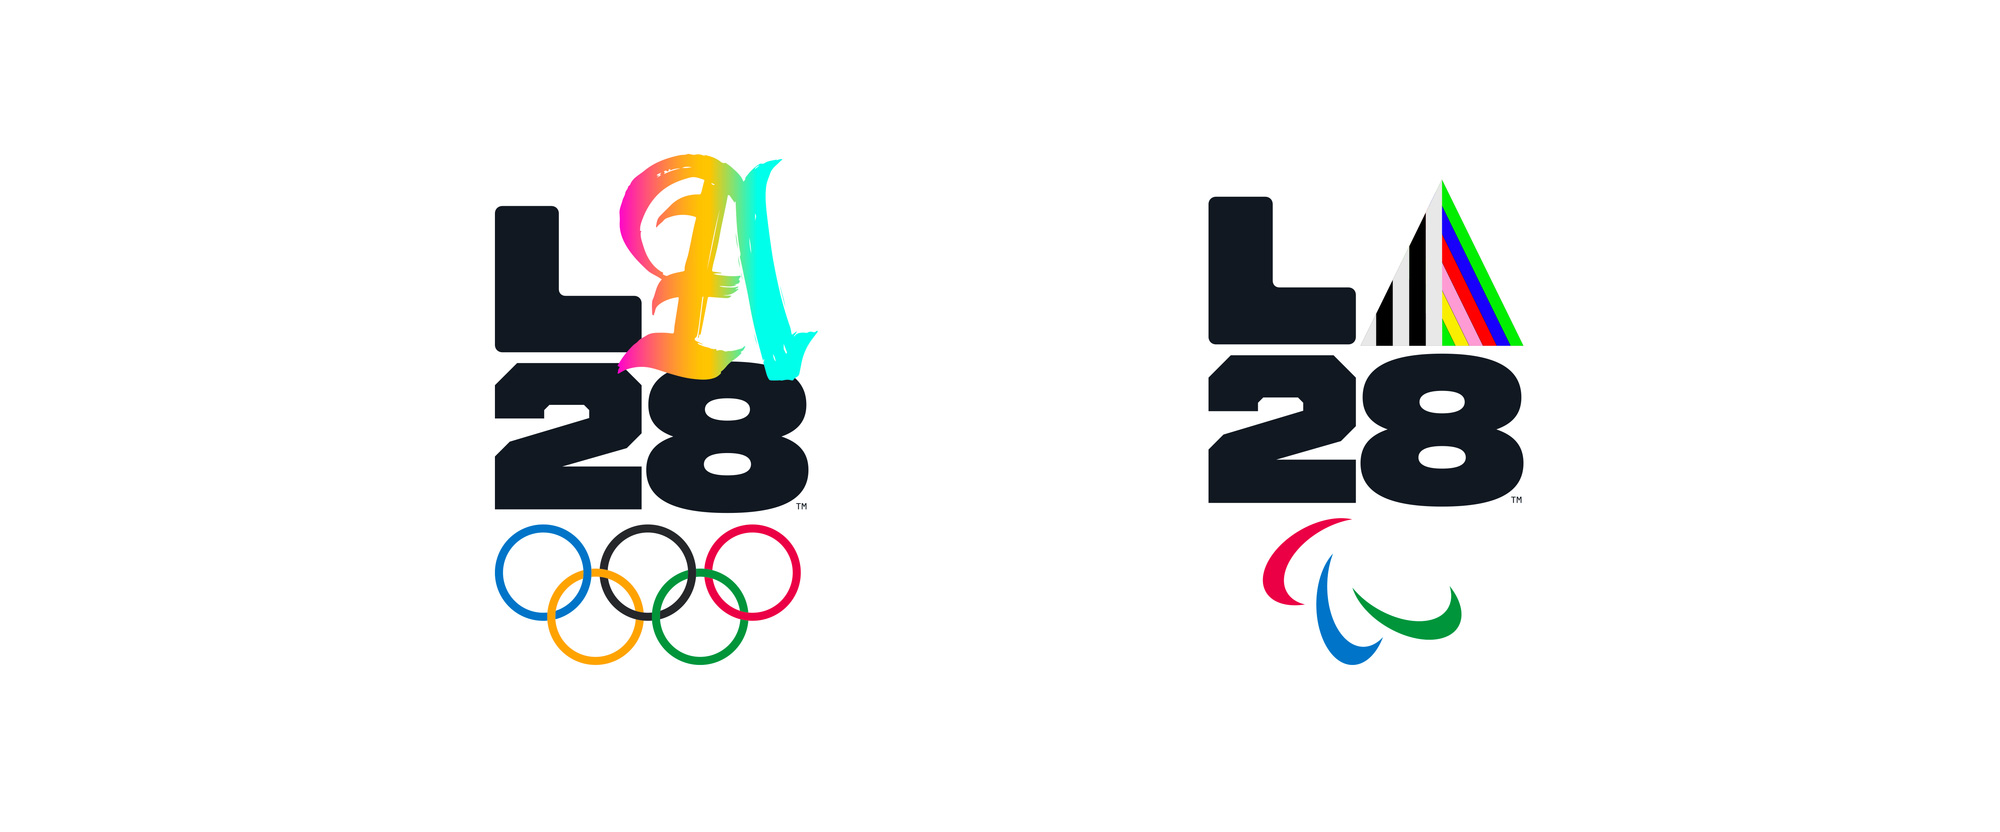 New Emblems for LA28 Olympic and Paralympic Games